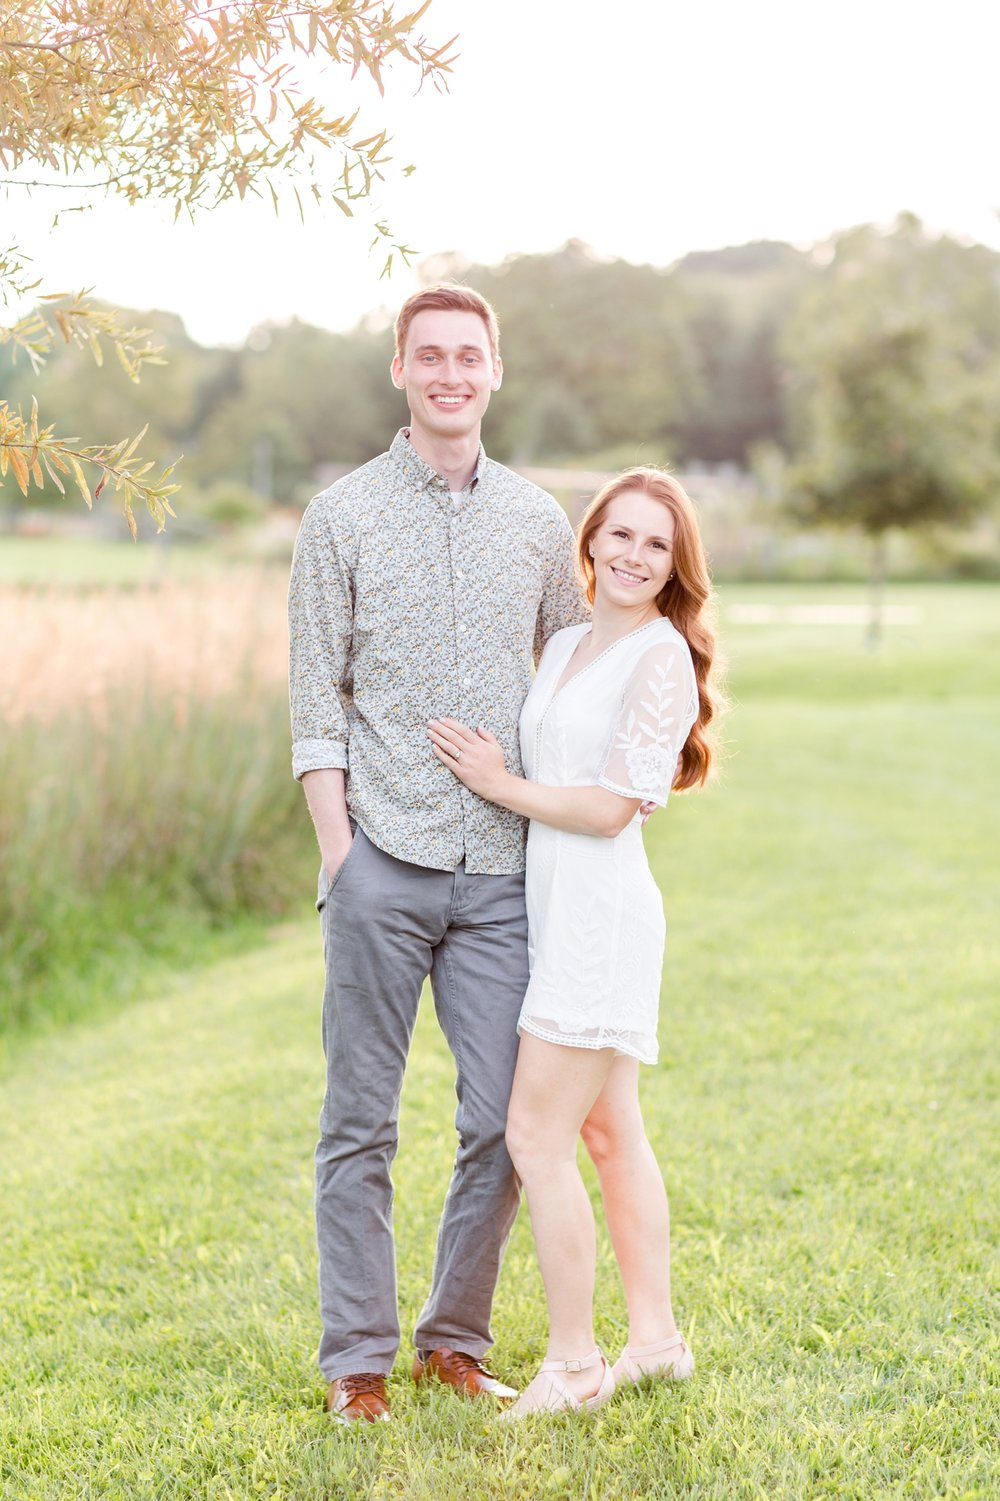 Jessica & Leo Engagement-3_Maryland-Agricultural-Resource-Center-engagement-photographer-anna-grace-photography-photo.jpg